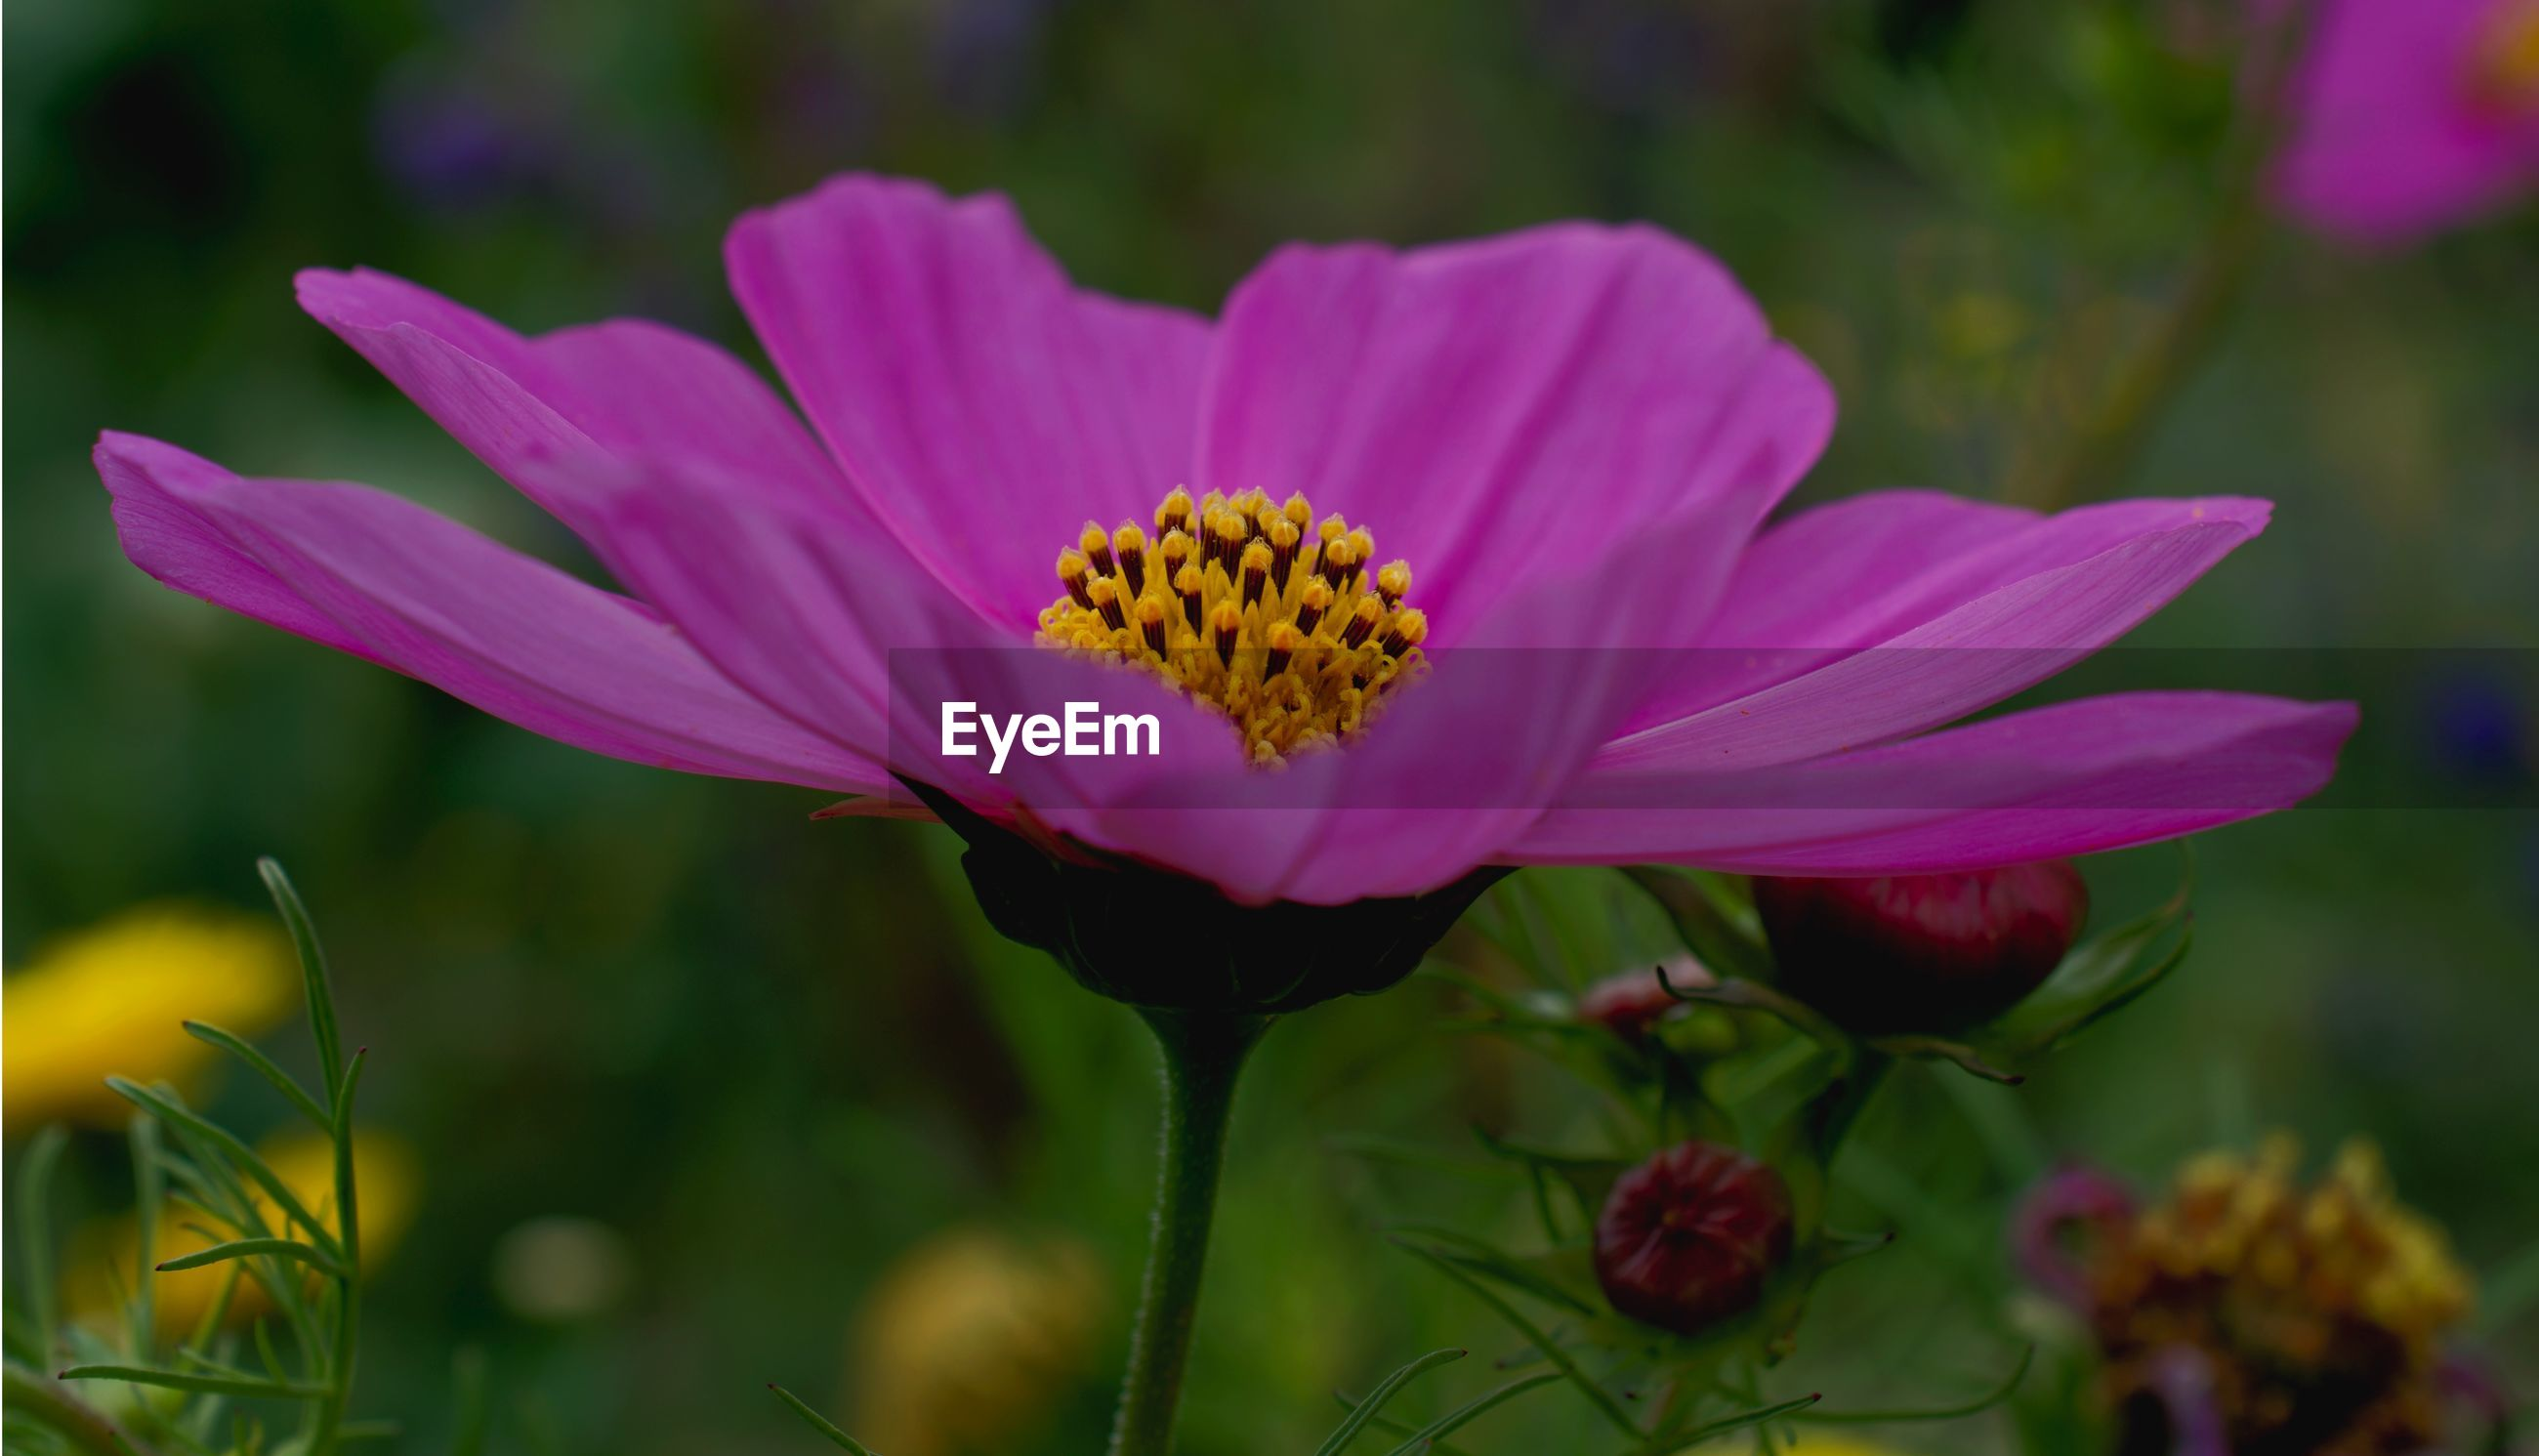 CLOSE-UP OF PINK COSMOS FLOWER AGAINST BLURRED BACKGROUND